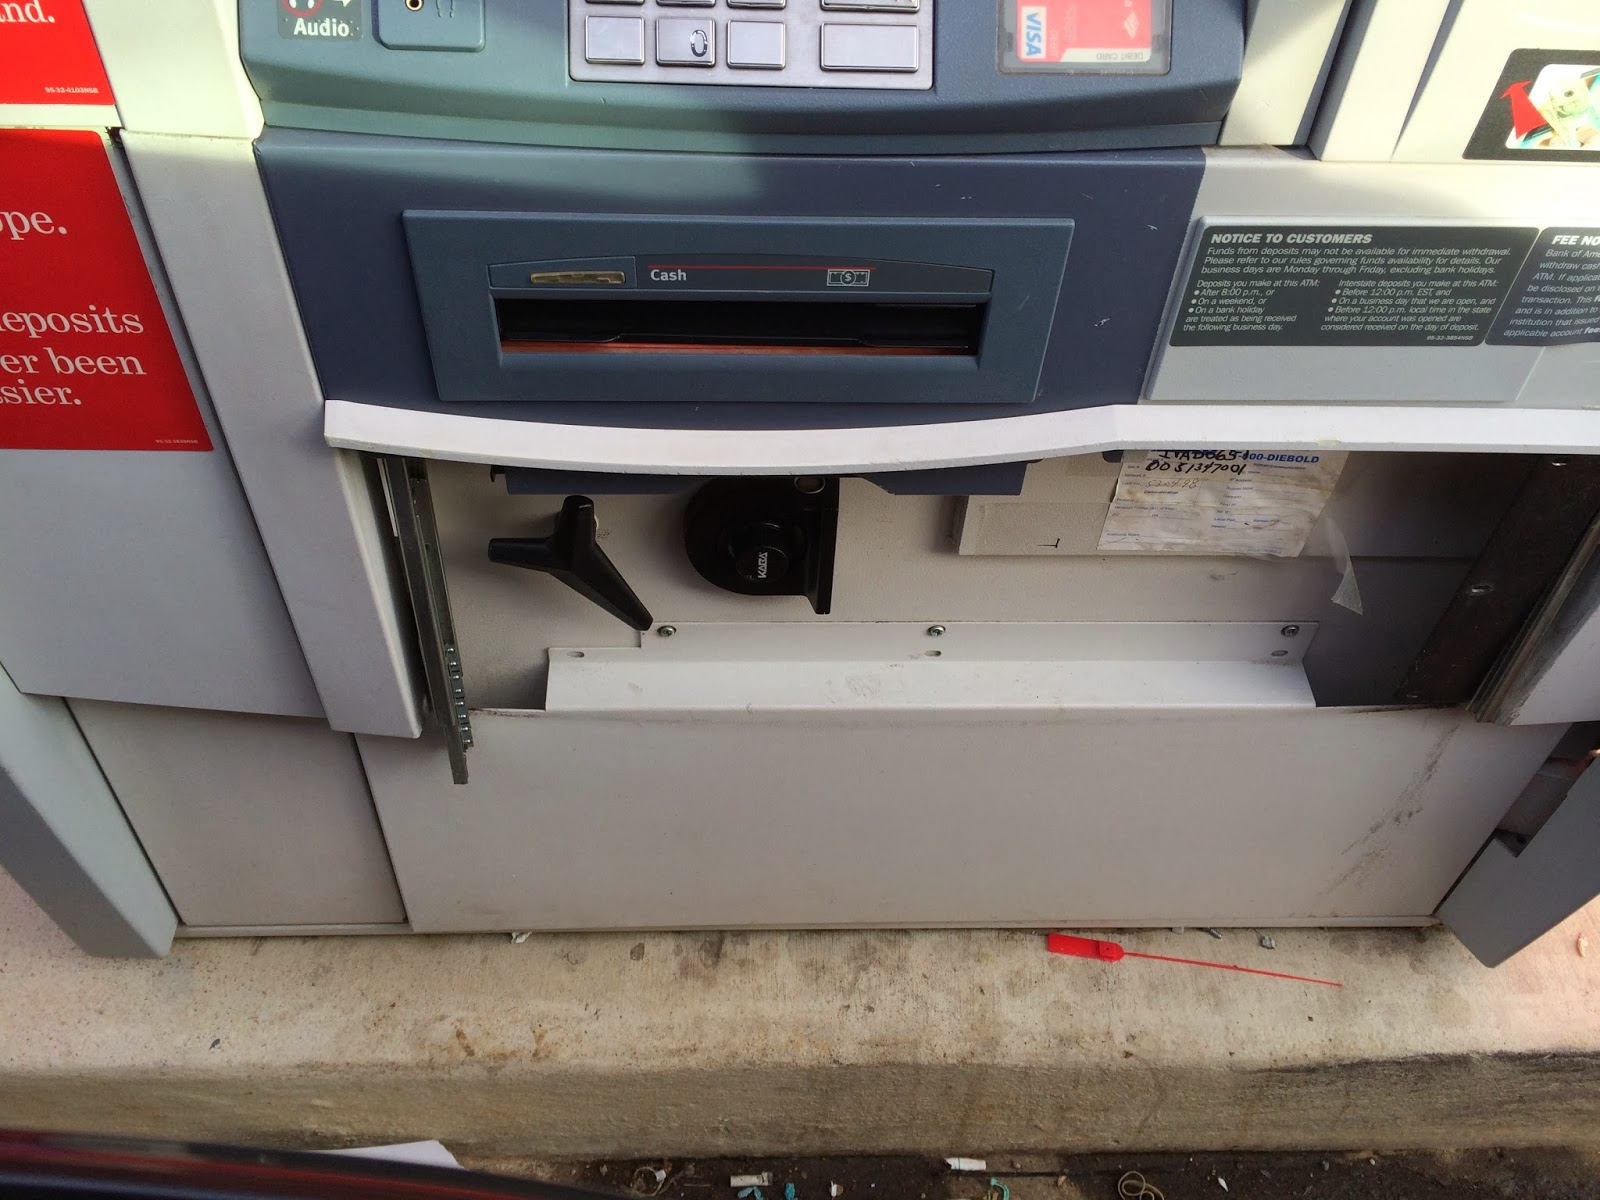 Kaba Lock on an ATM